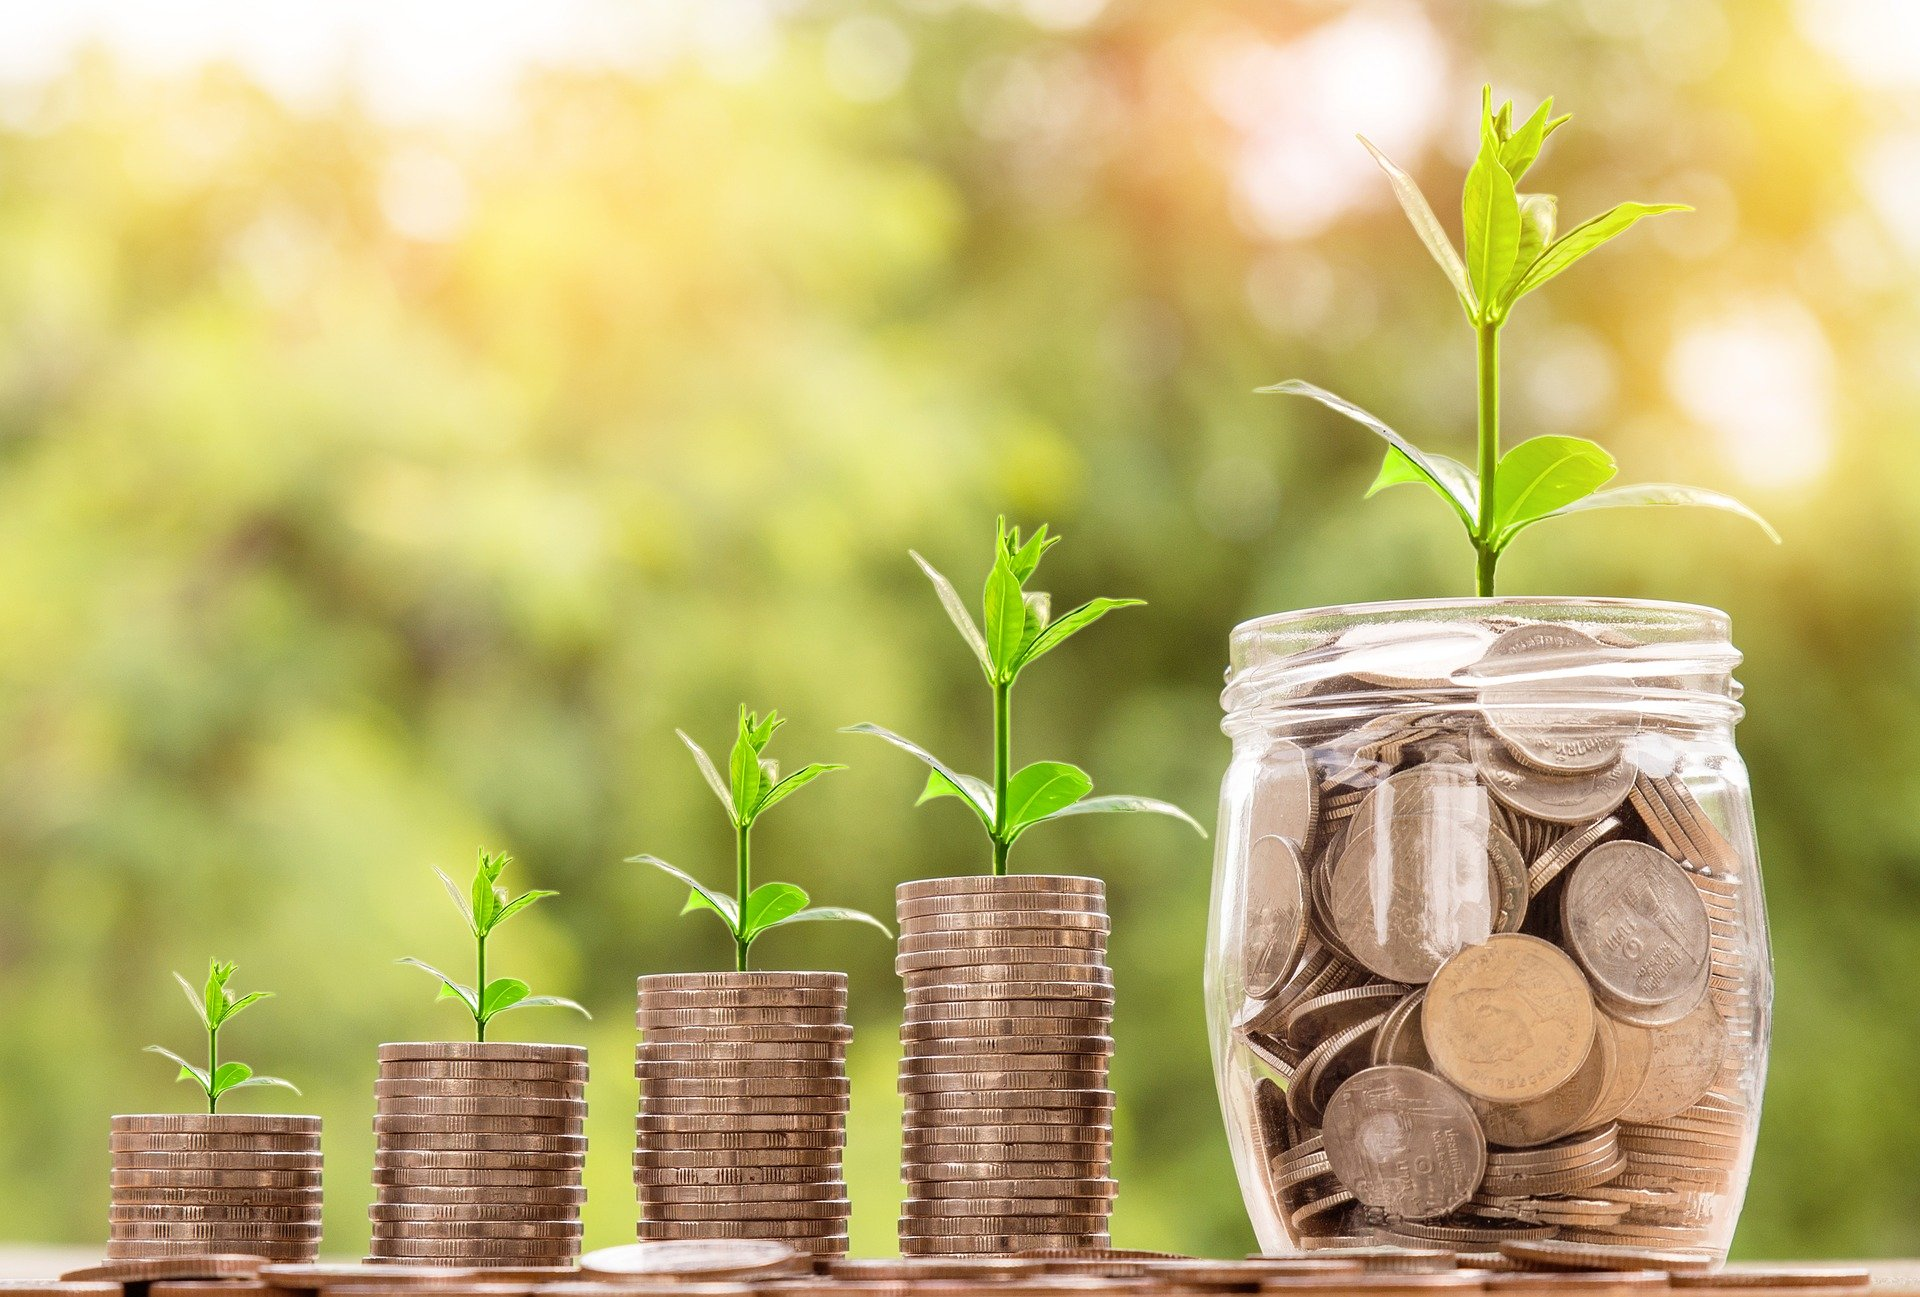 Getting Started with Sustainable Investing